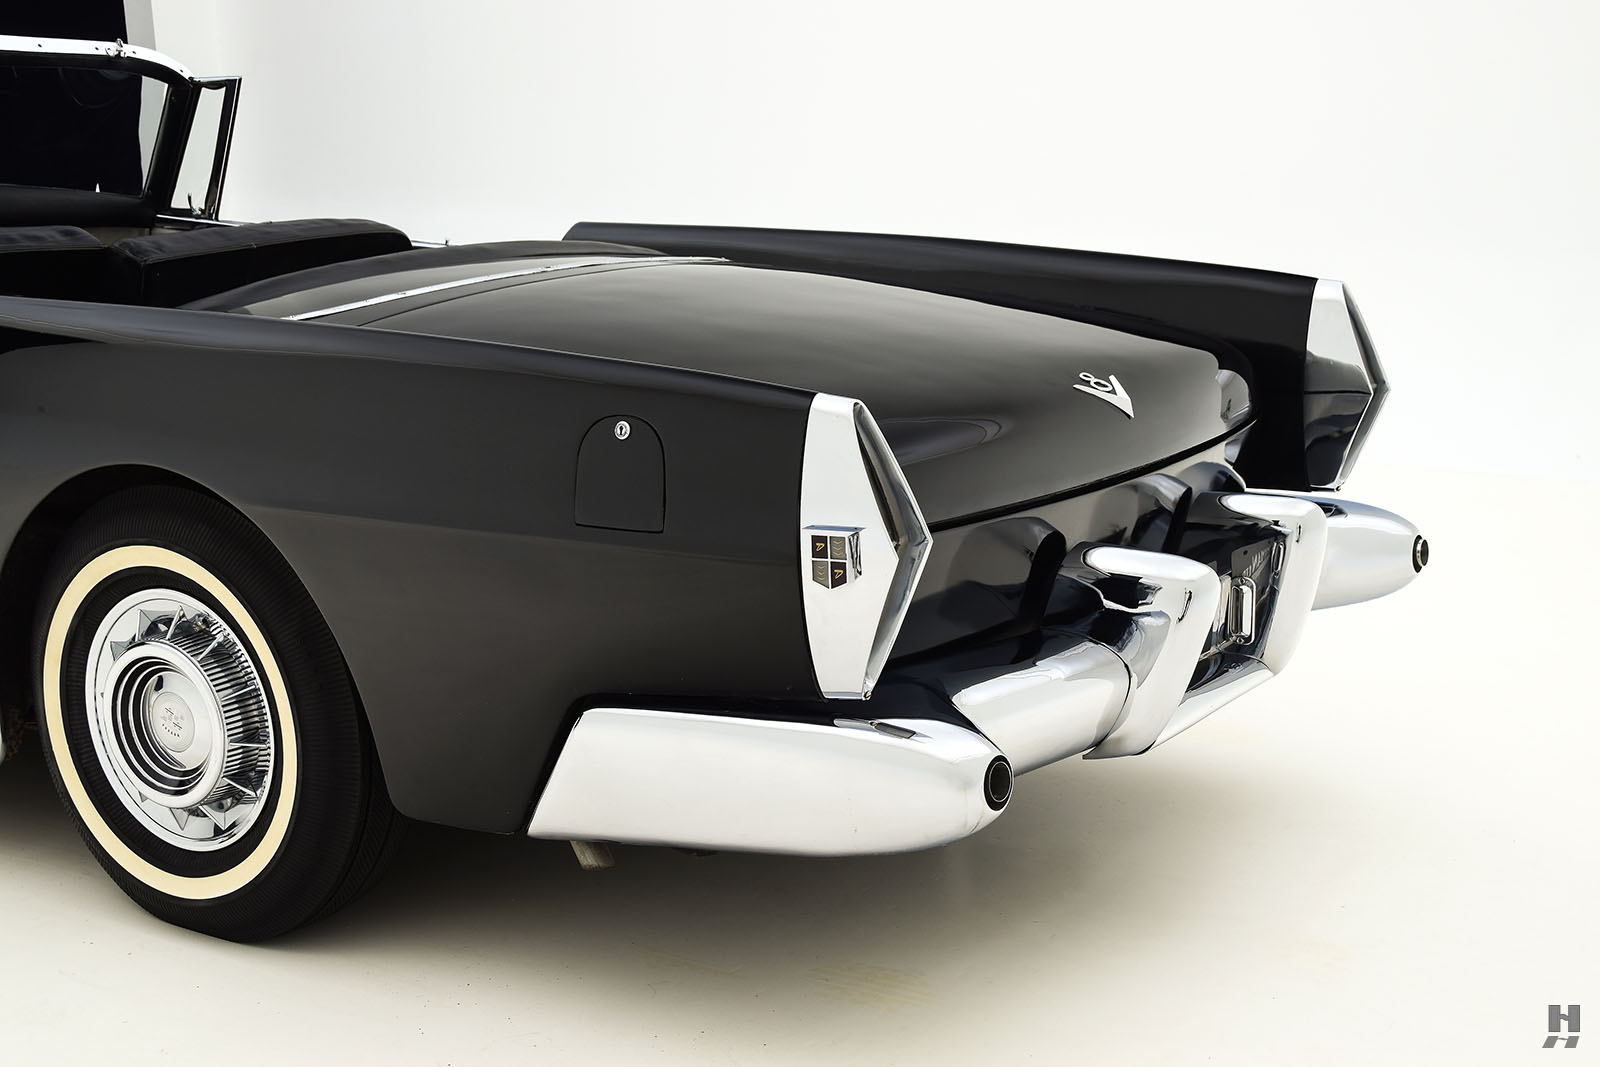 1955 Cadillac Die Valkyrie Concept Car For Sale Classic